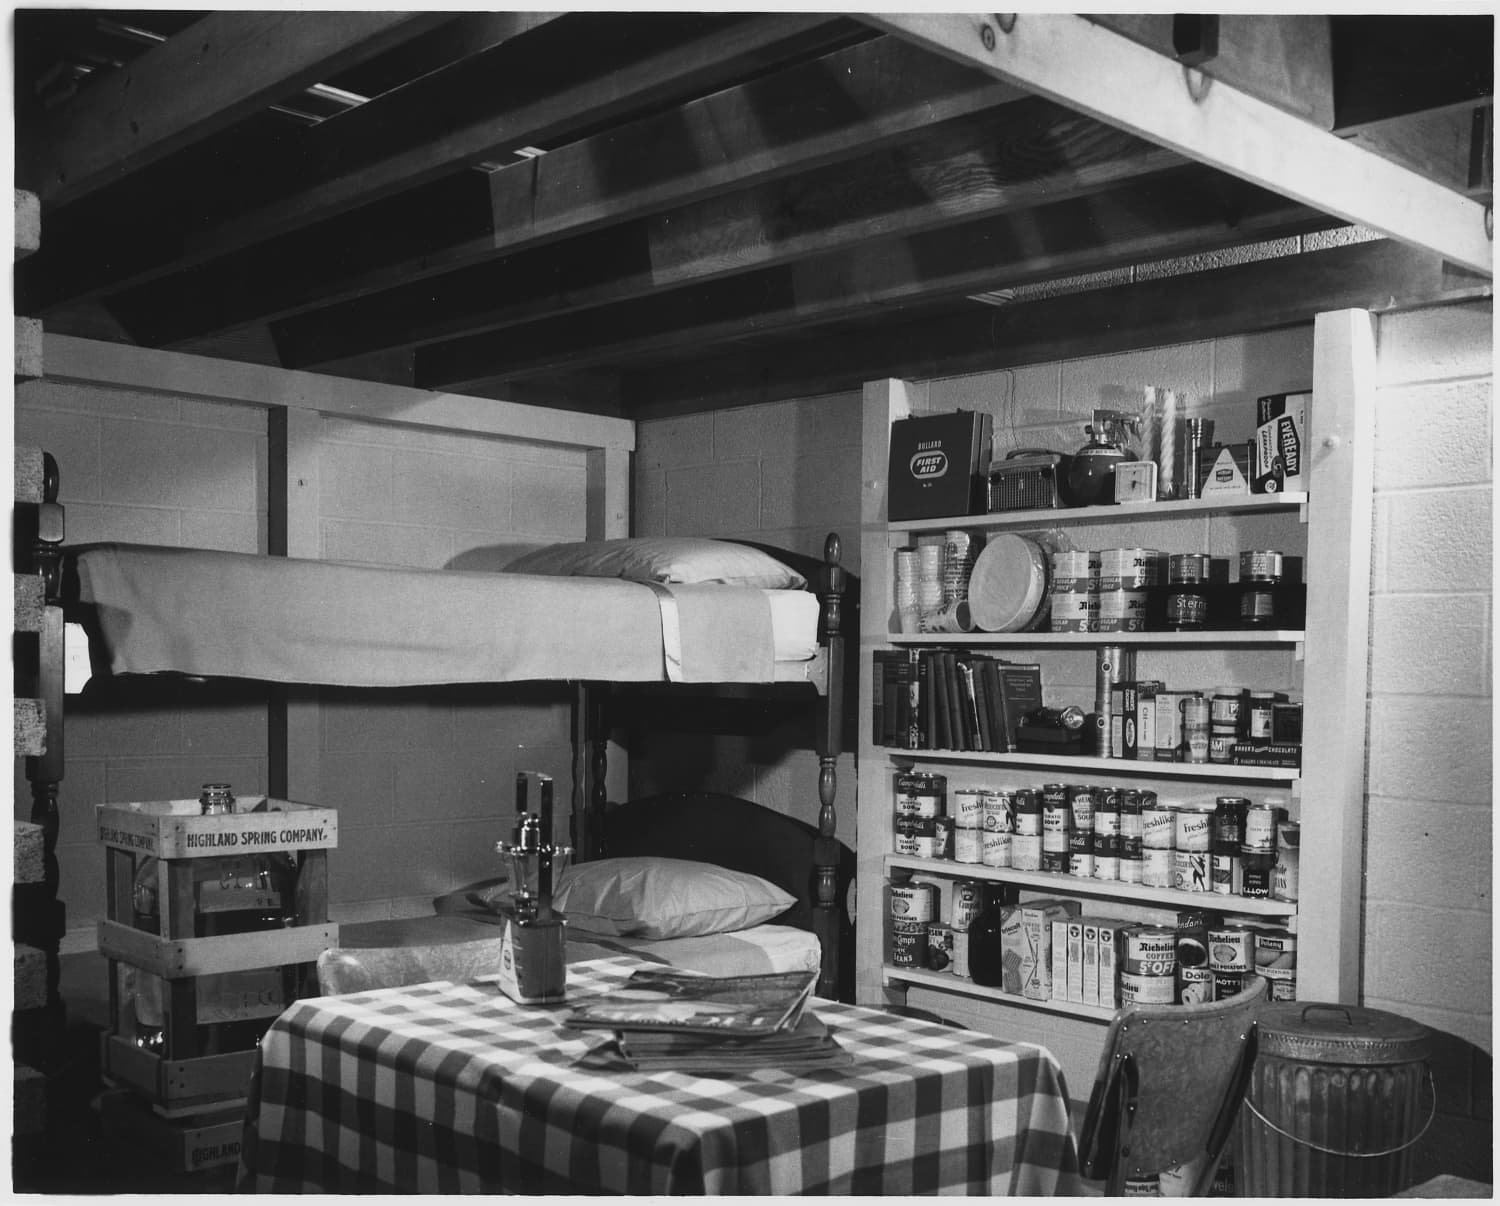 A Brief (and Bleak) History of Building Fallout Shelters in American Homes